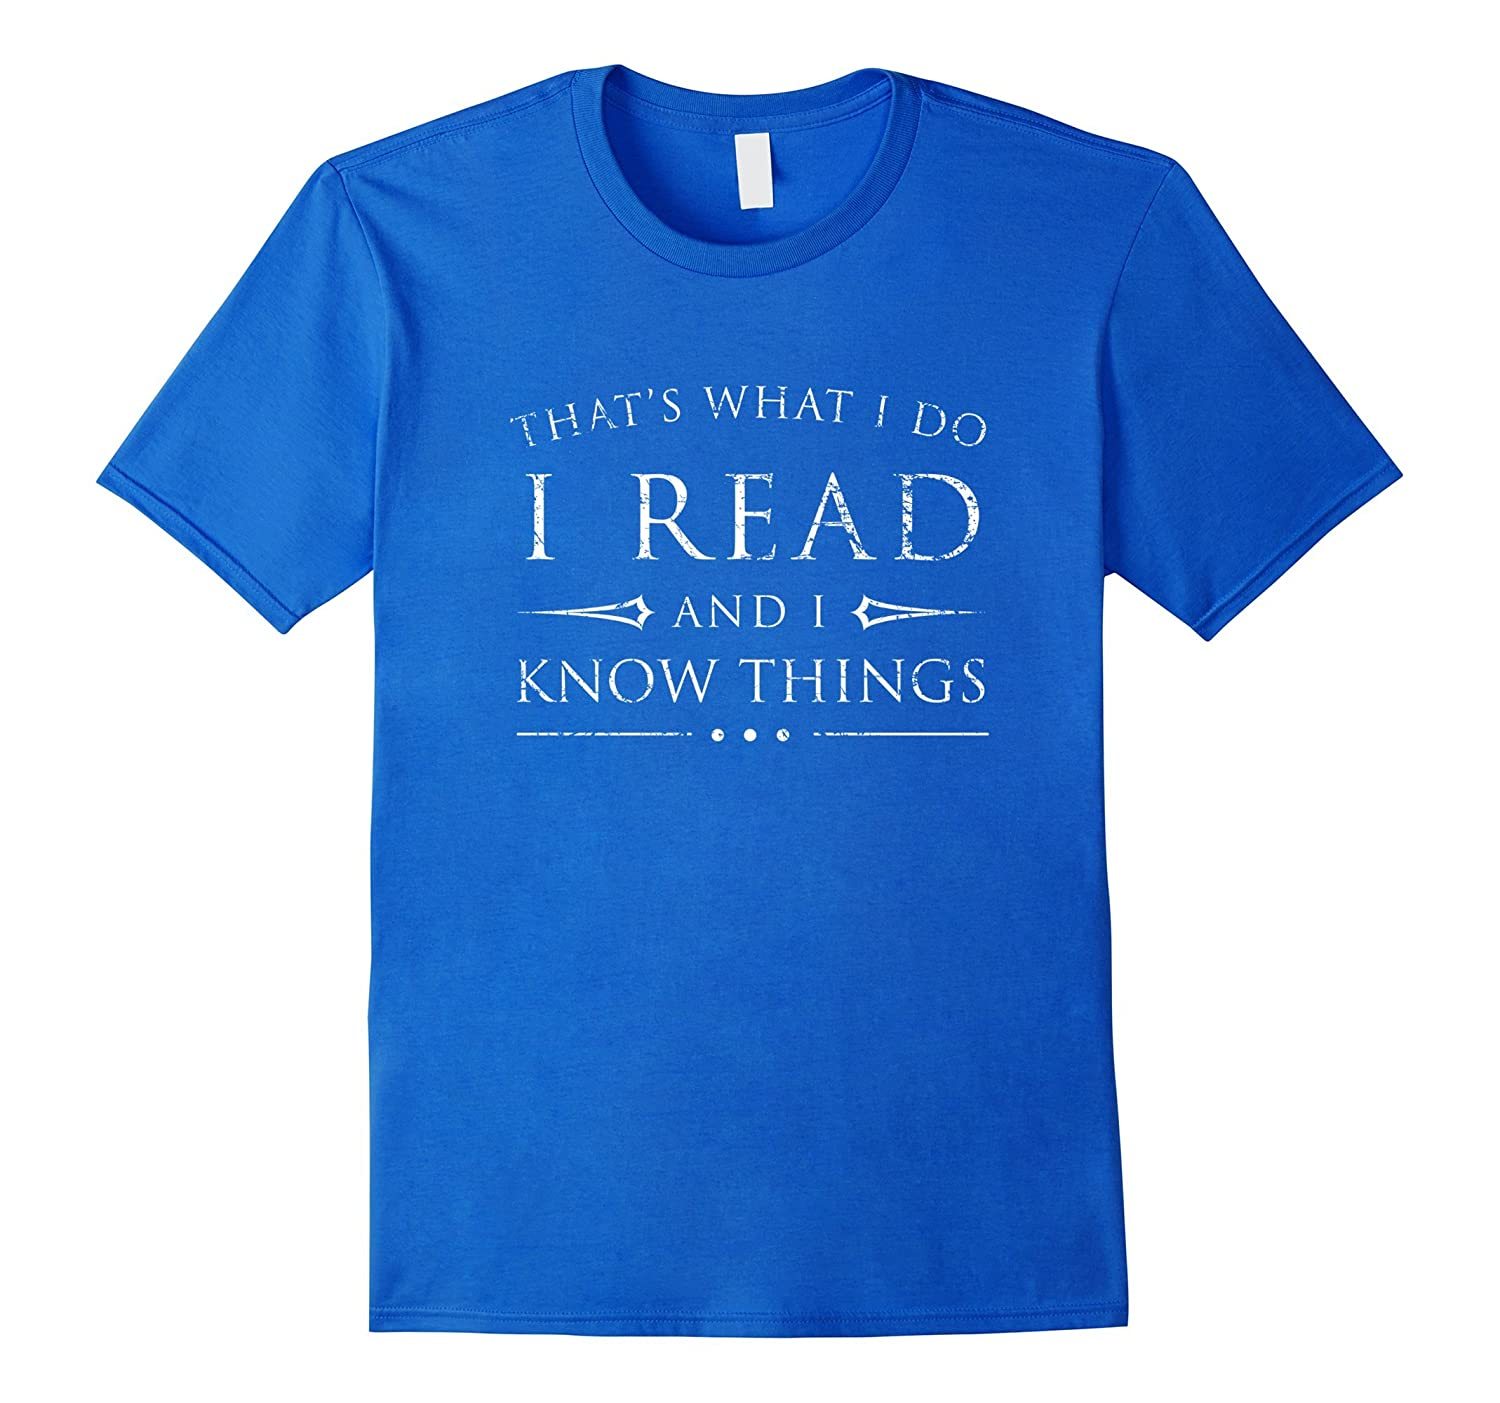 I Read and I Know Things Shirt, Funny Sarcastic Reading GIft-FL